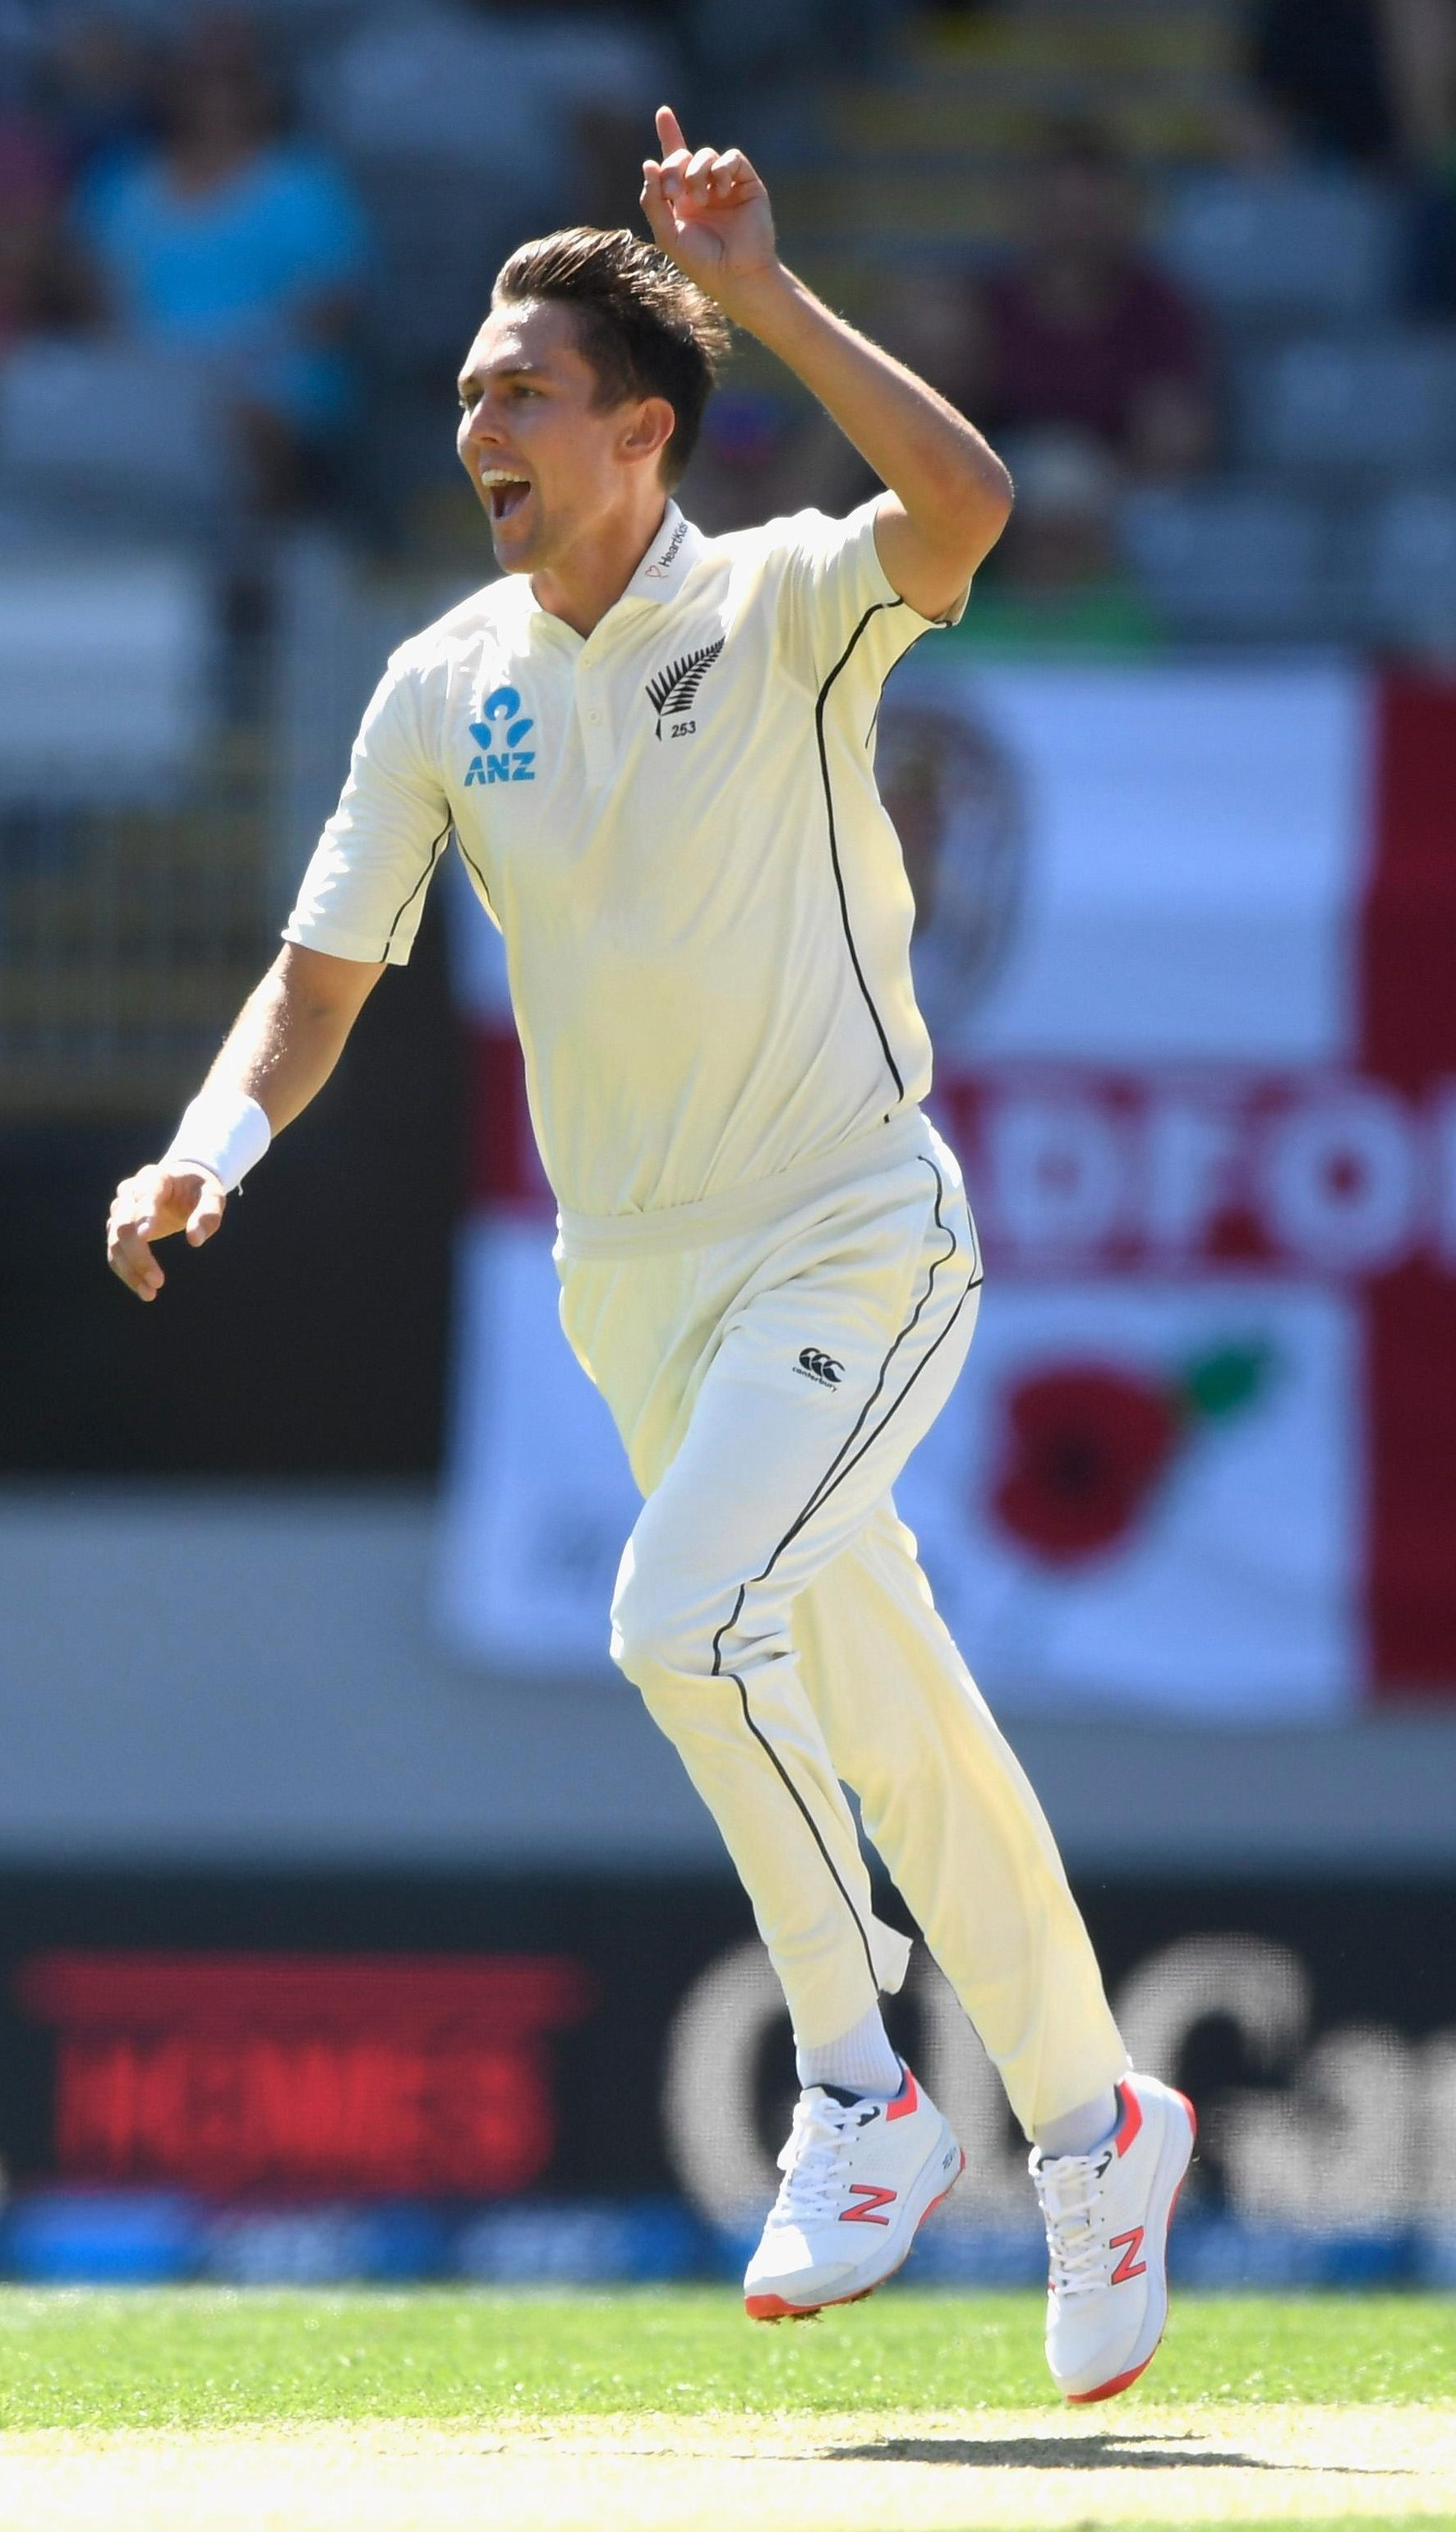 Boult celebrates taking Root's wicket